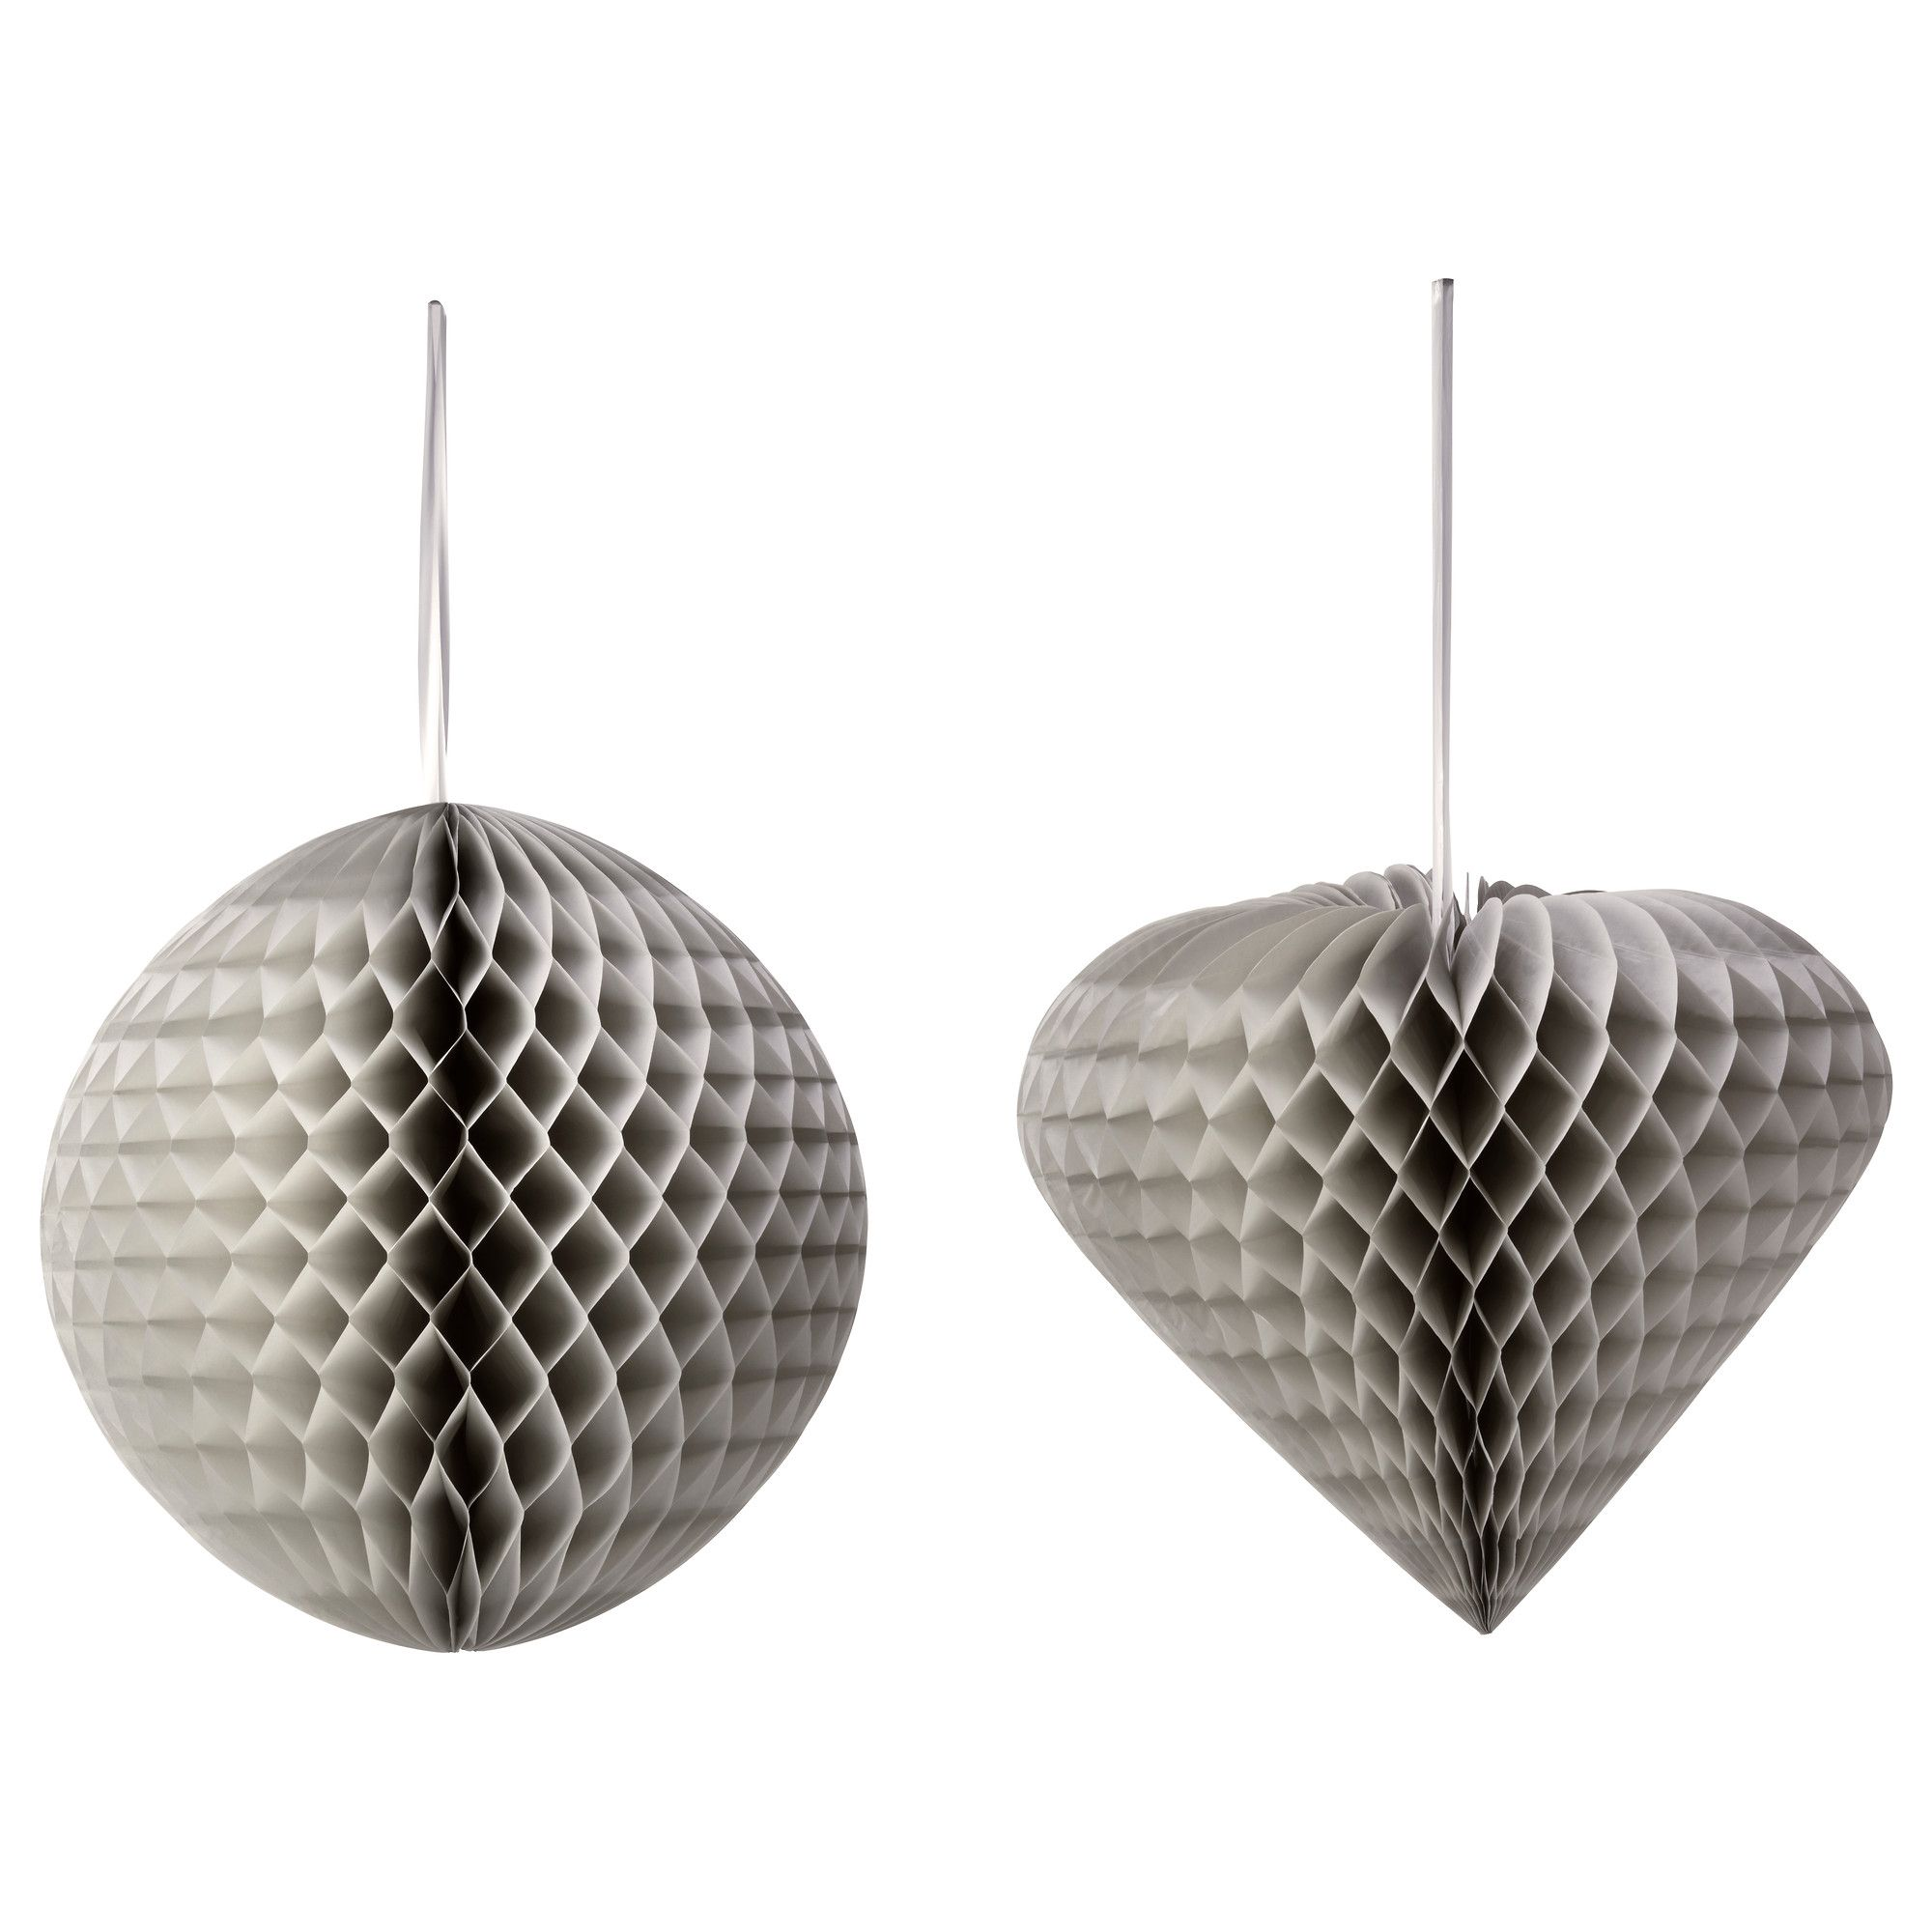 Honeycomb decoration decorations pinterest honeycombs visit our new paper shop at ikea we have a huge range of stationery including notepads paper decorations wrapping paper and gift bags junglespirit Choice Image